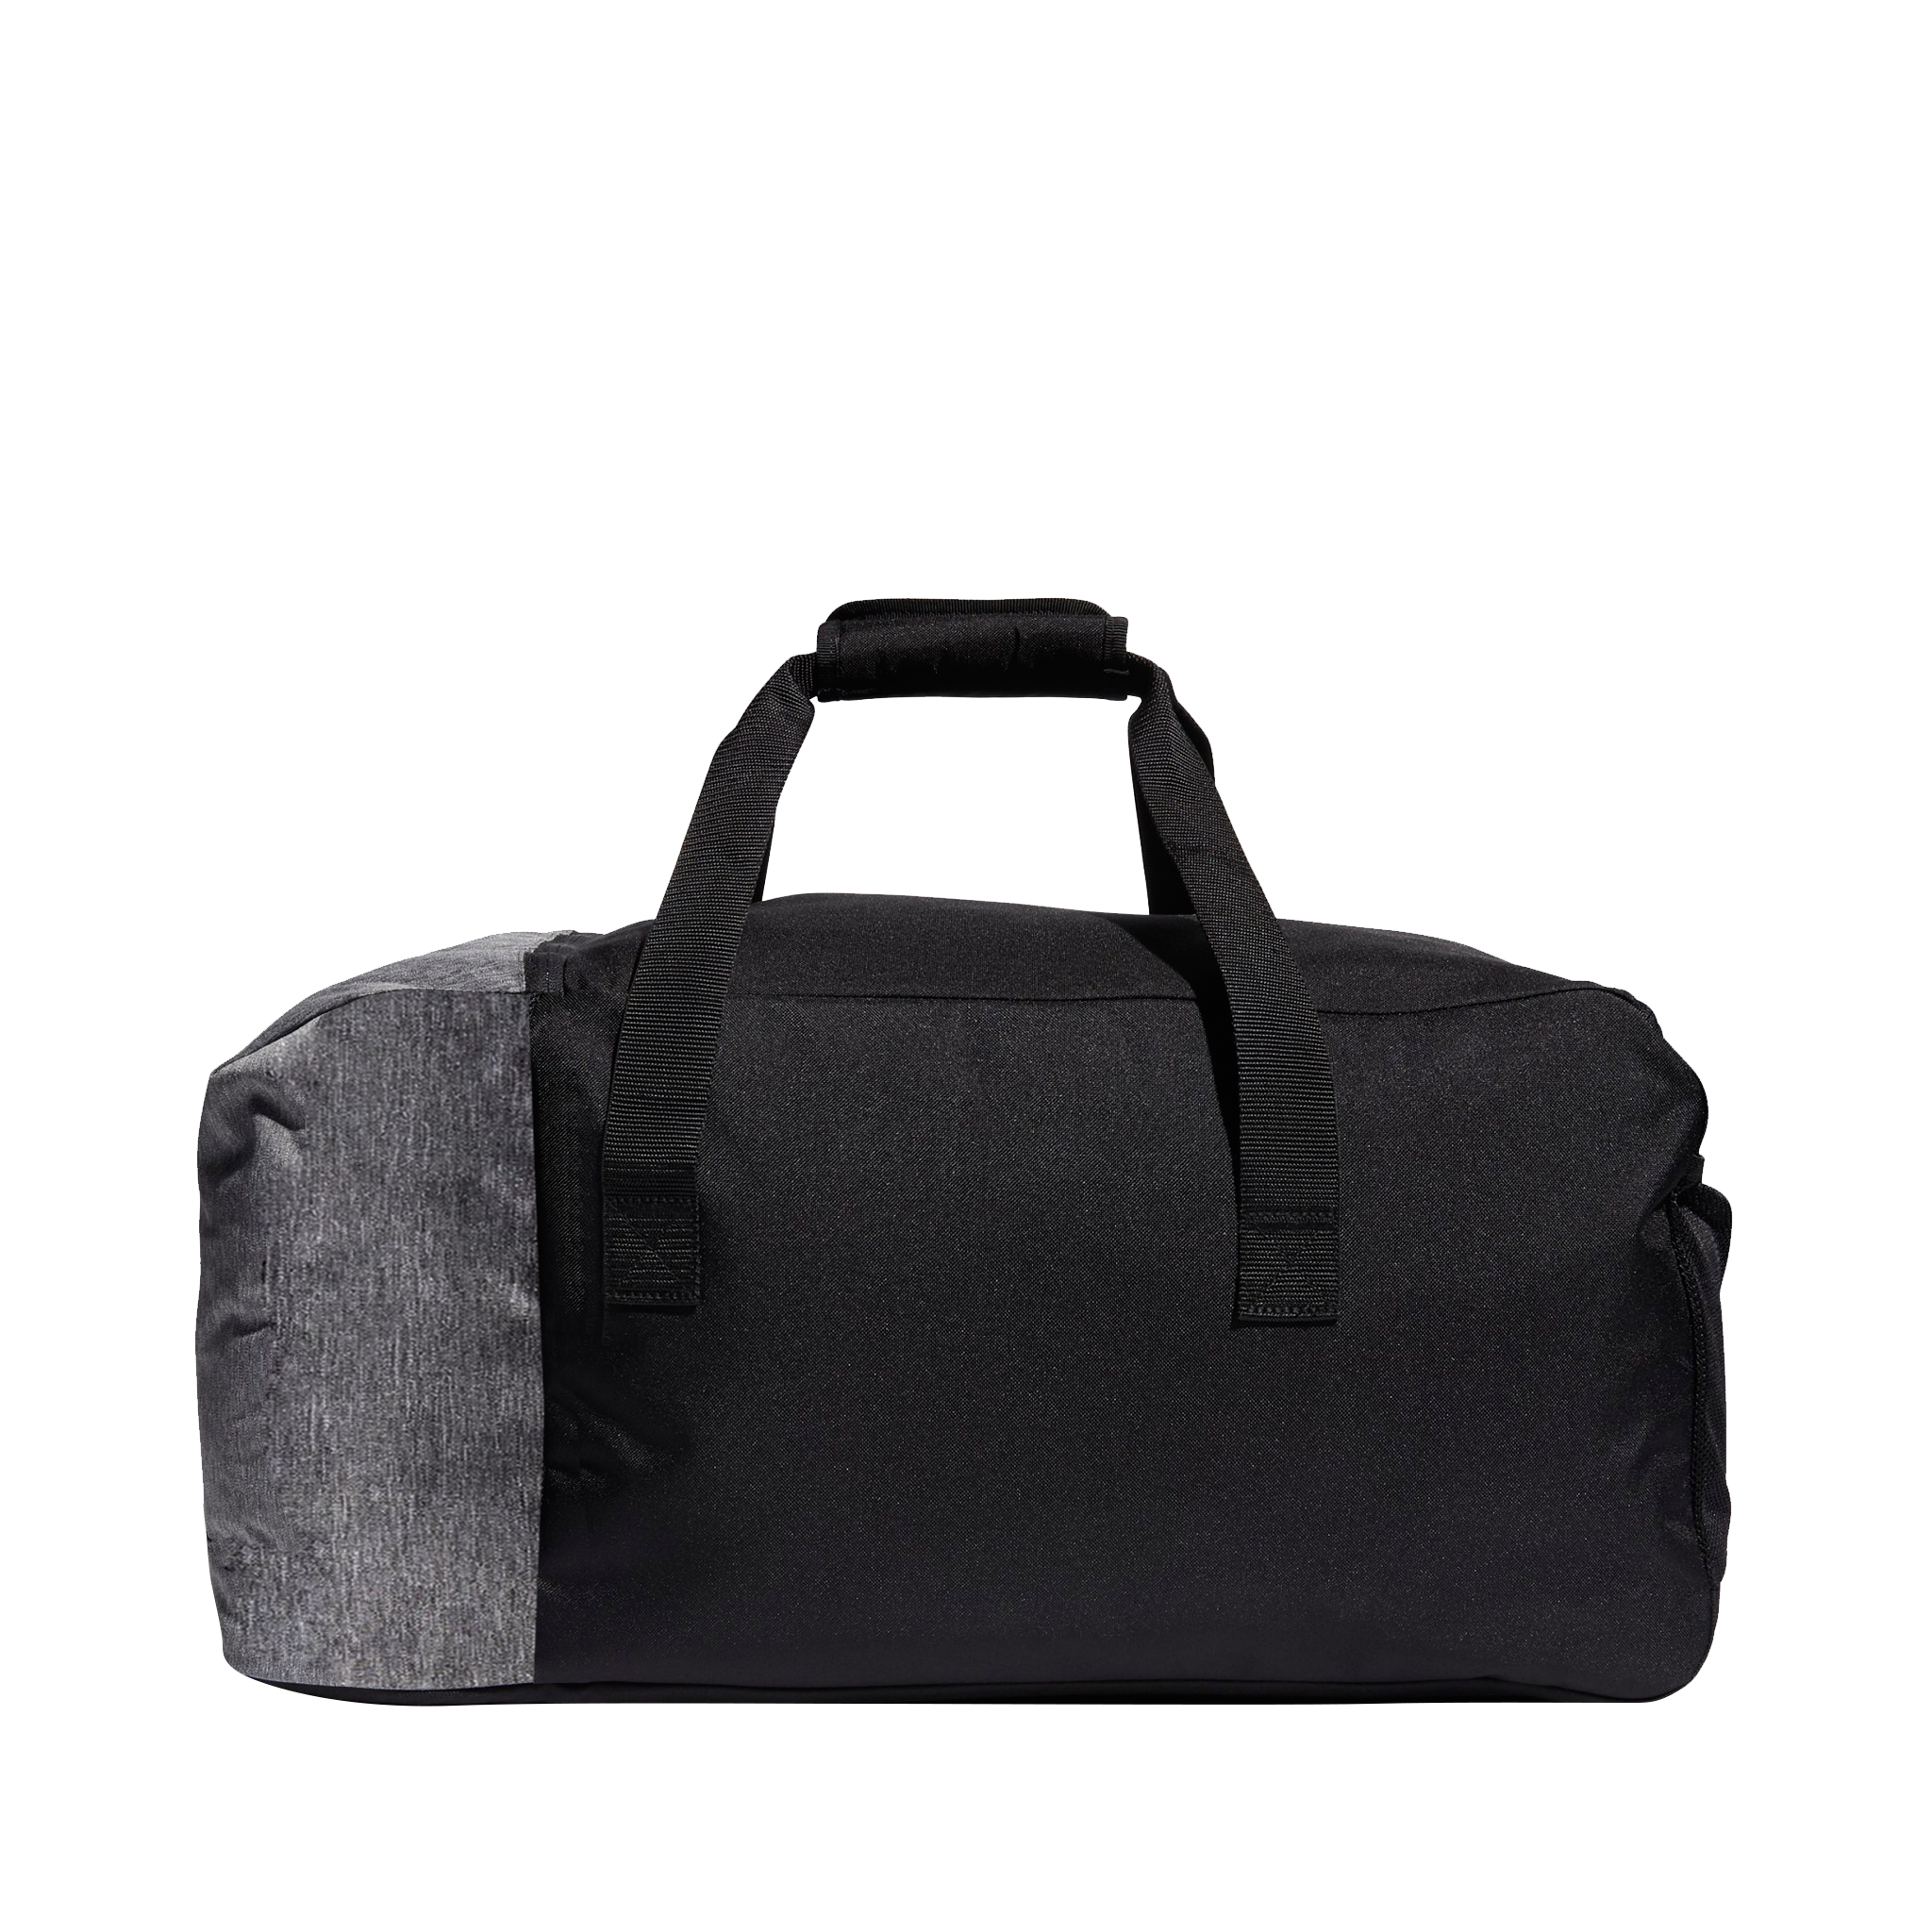 Two-tone Duffel Bag